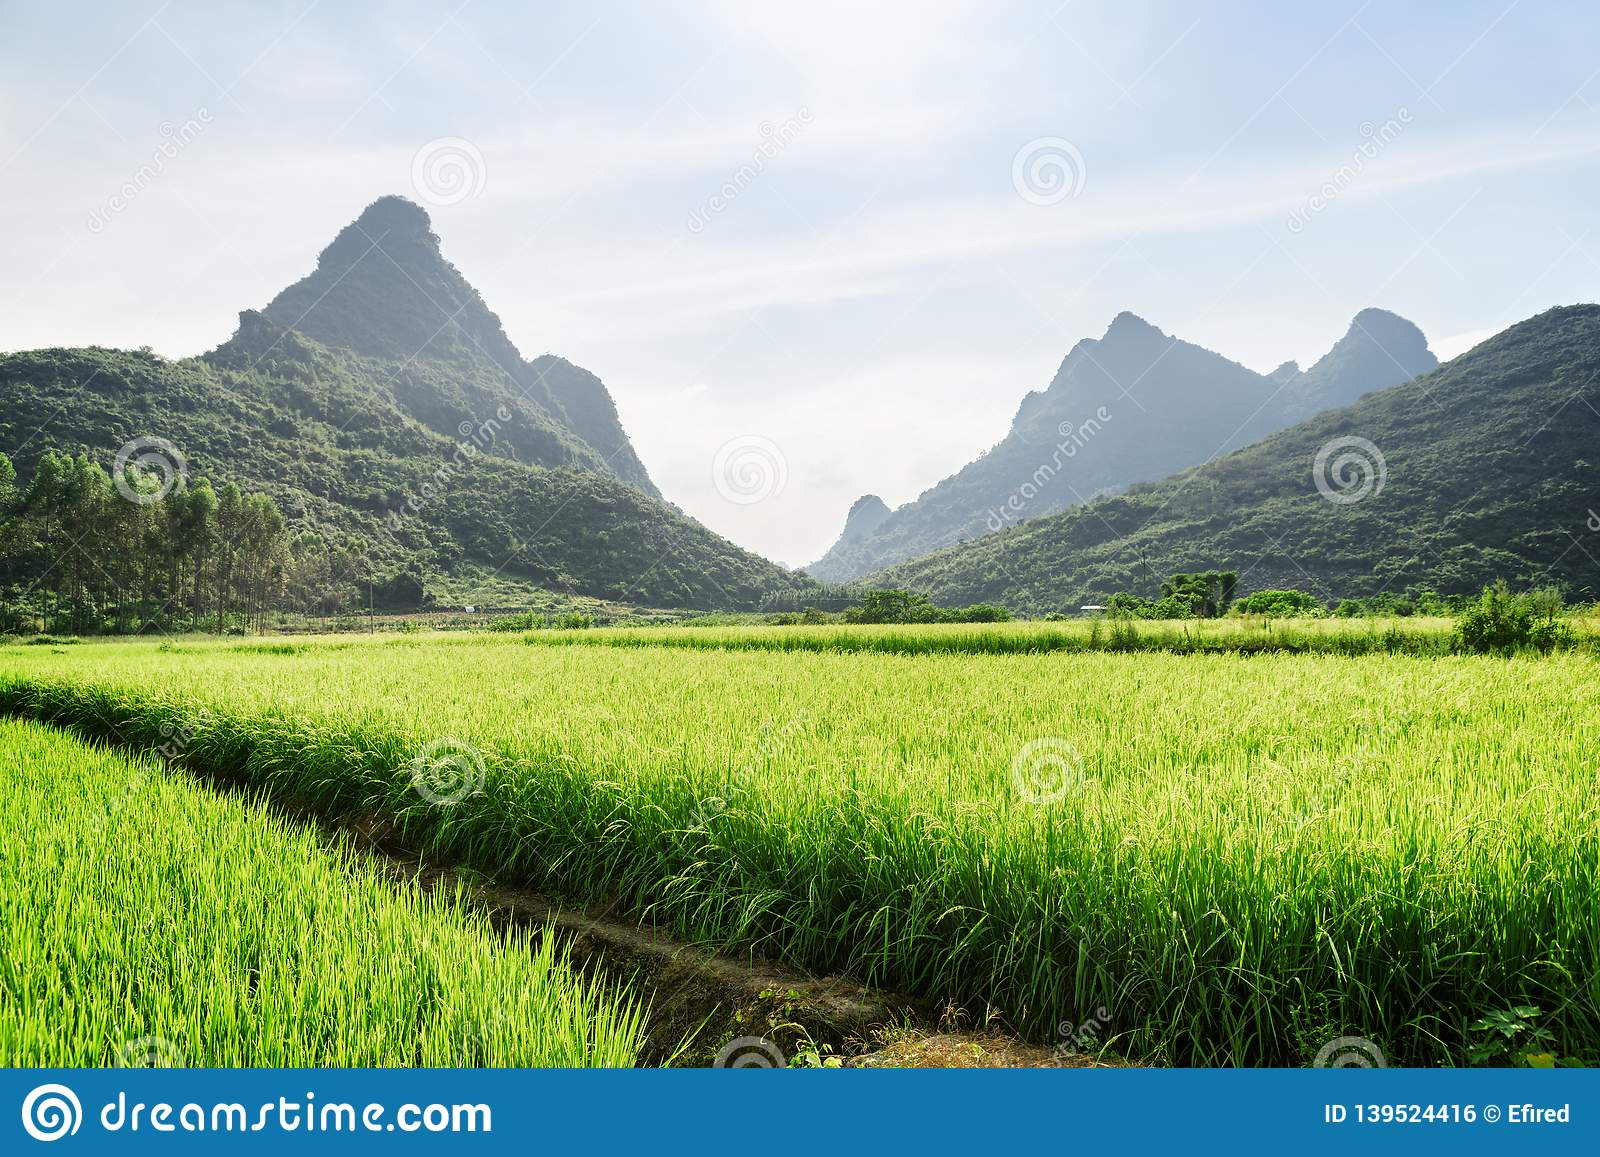 Scenic bright green rice fields and beautiful karst mountains